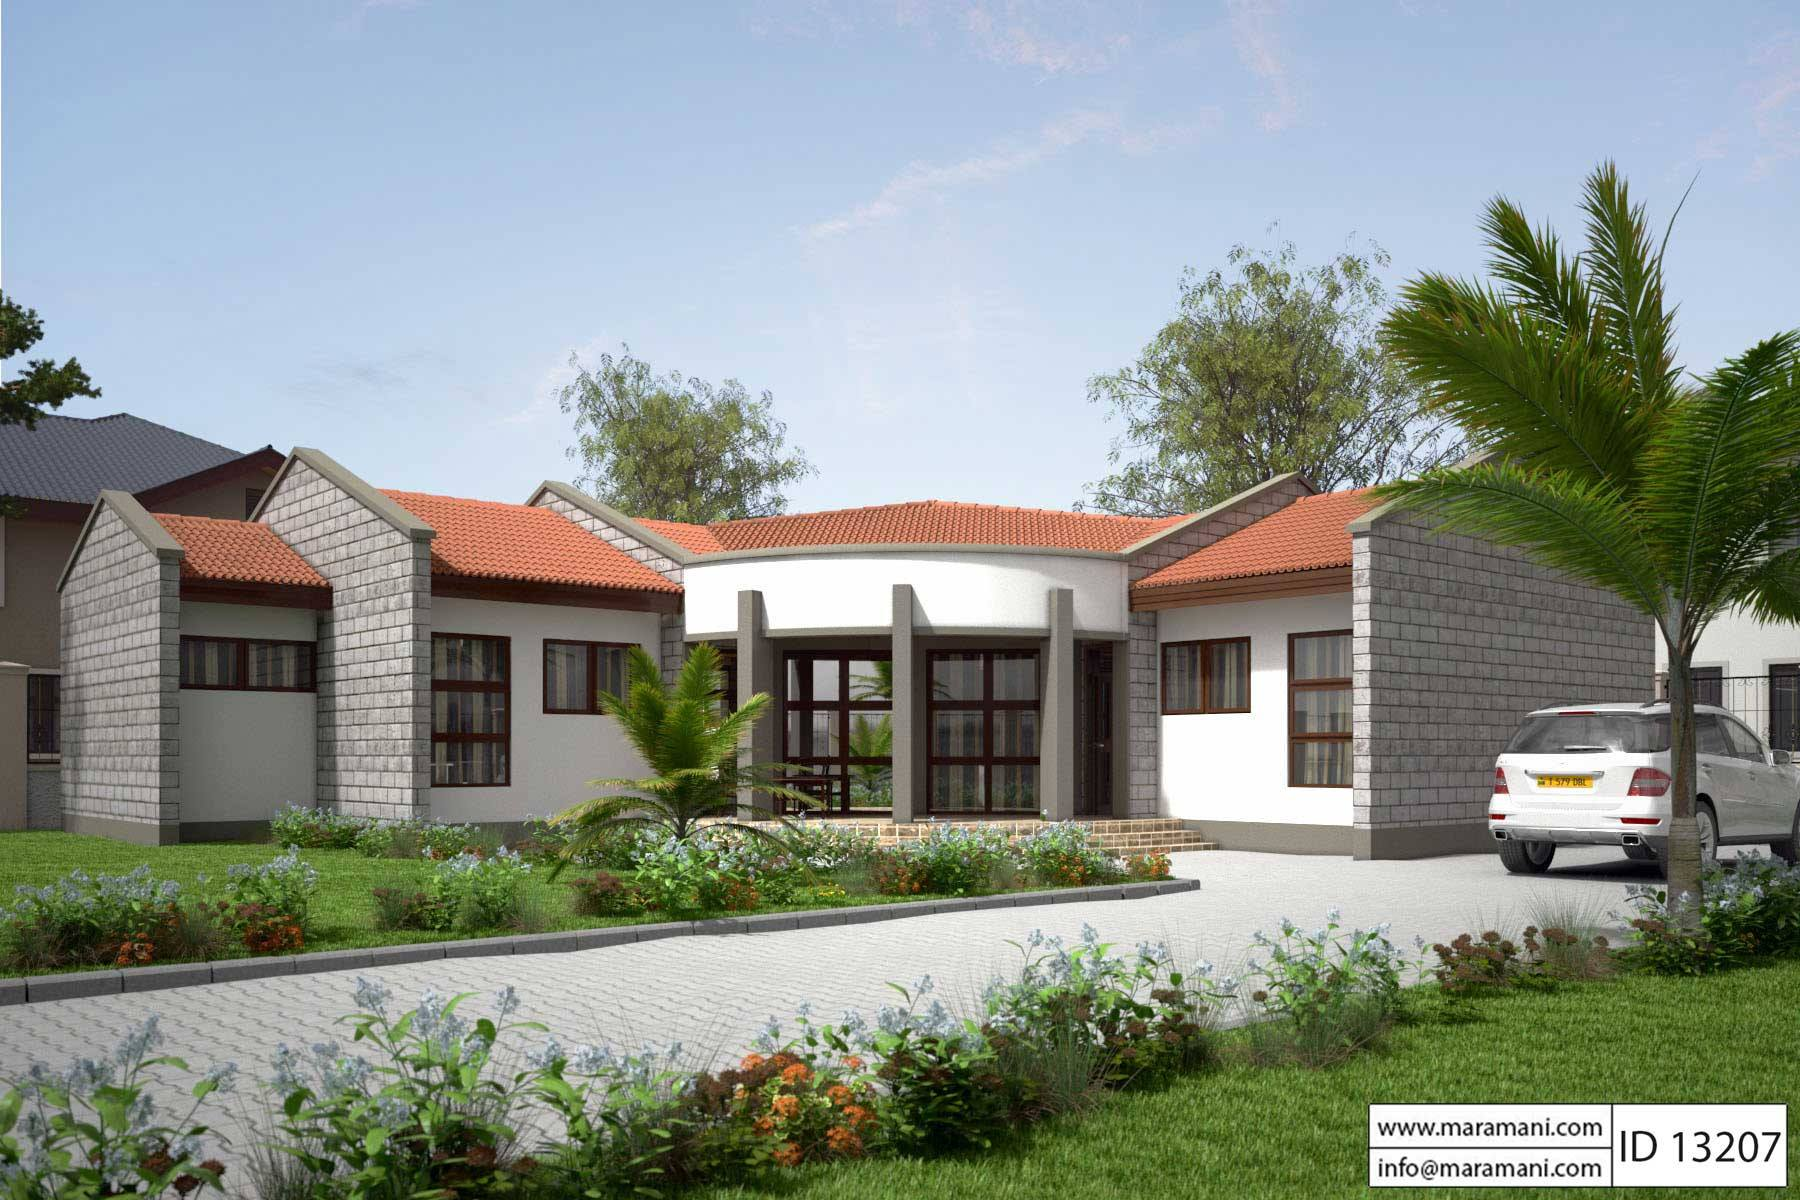 Superior 3 Bedroom House Plan   ID 13207